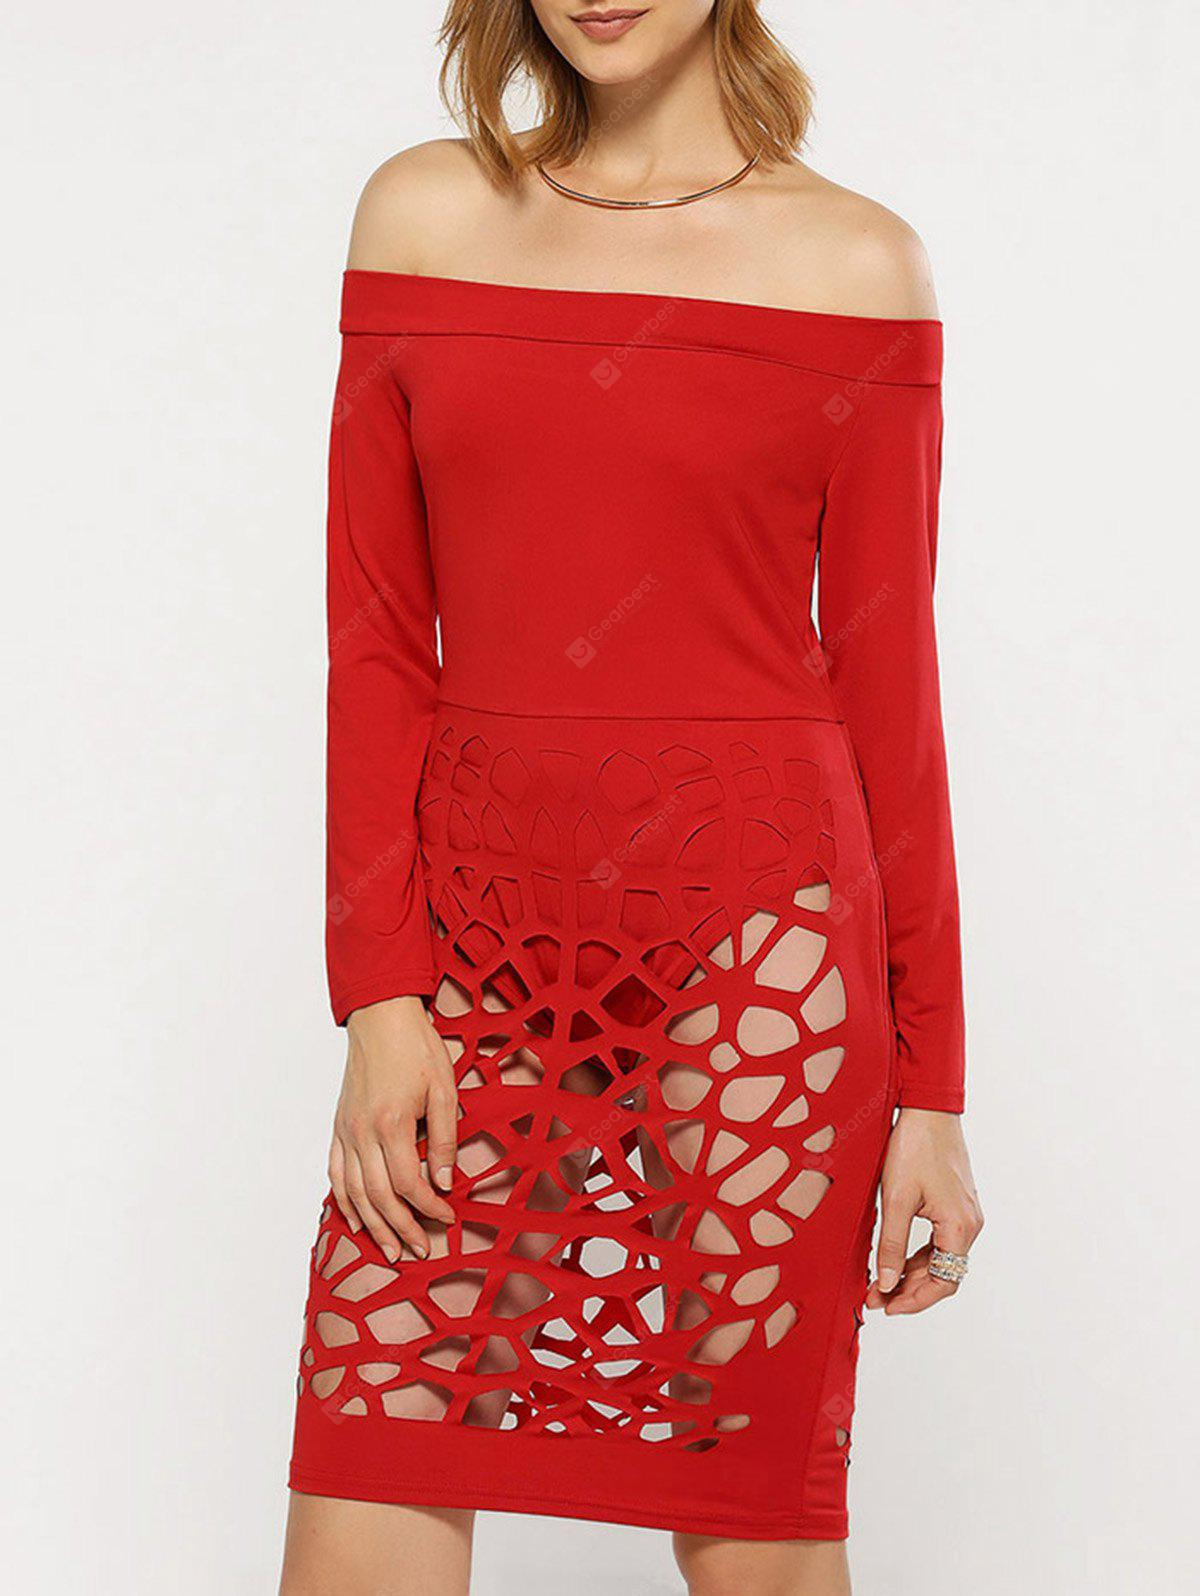 RED, Apparel, Women's Clothing, Women's Dresses, Bodycon Dresses